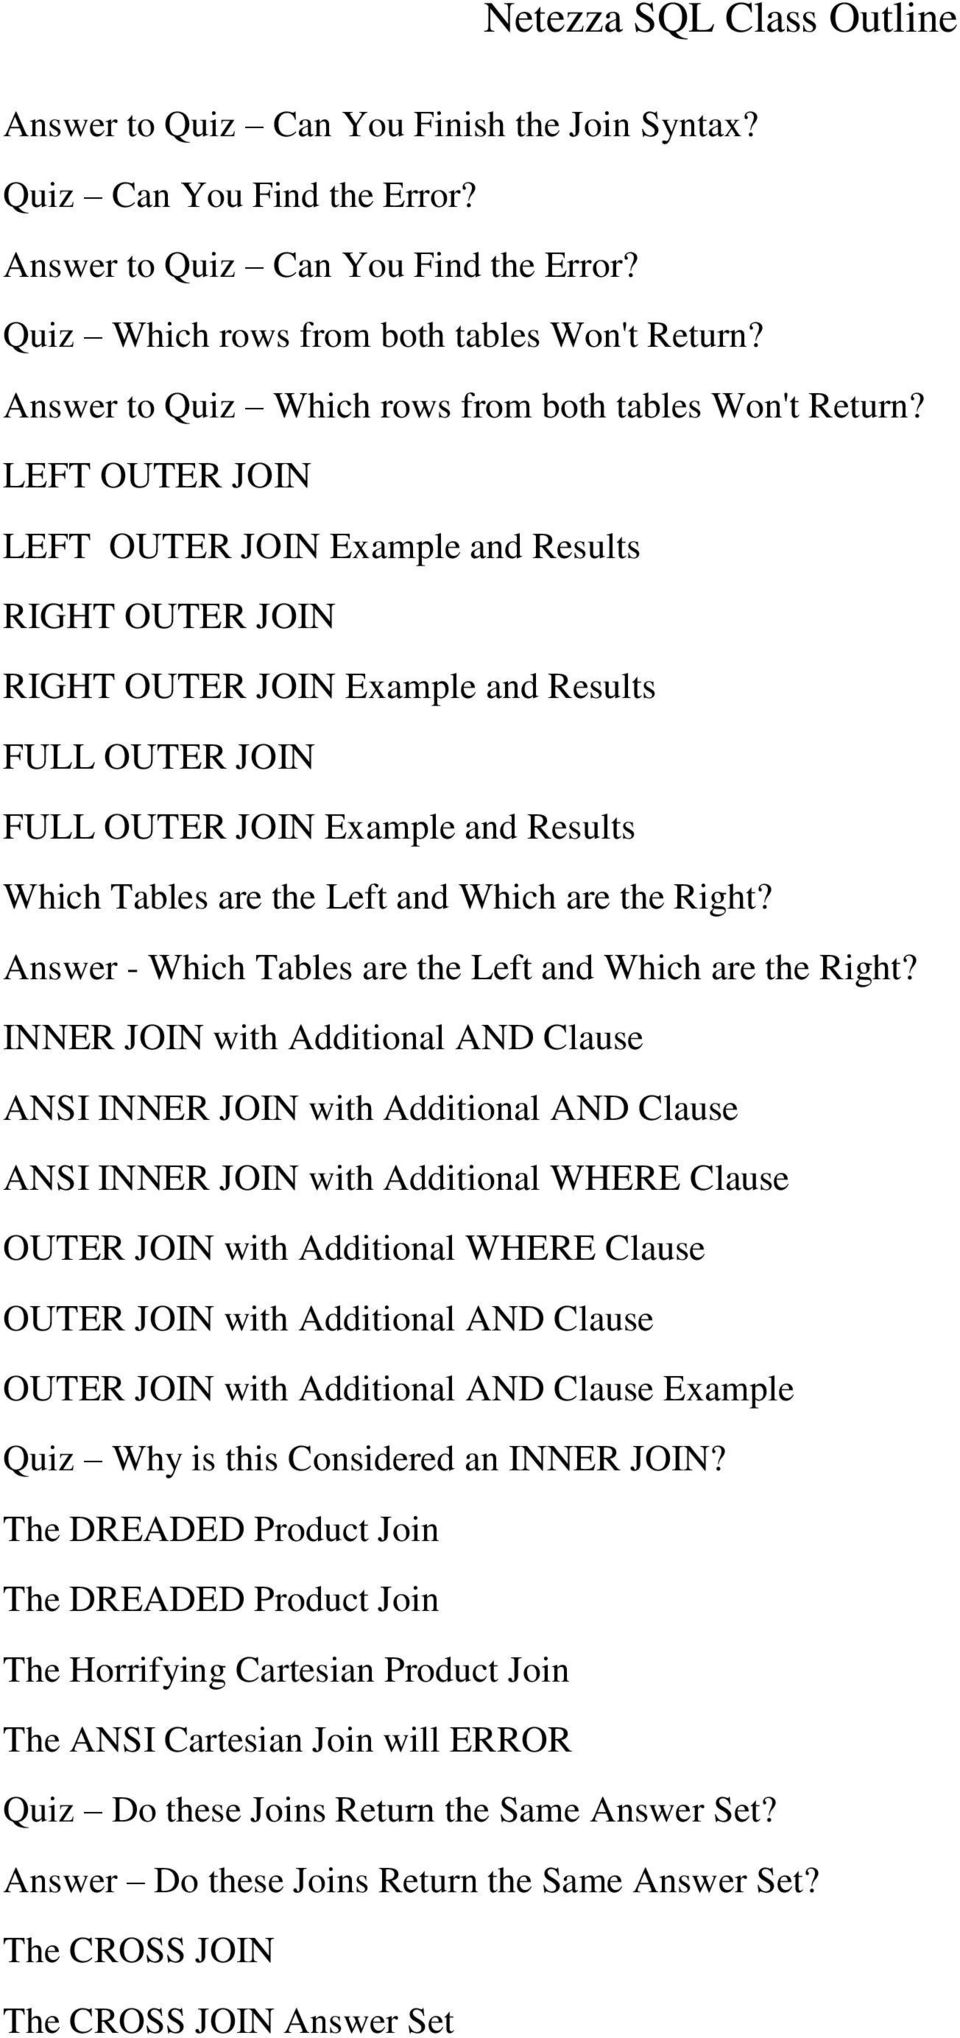 LEFT OUTER JOIN LEFT OUTER JOIN Example and Results RIGHT OUTER JOIN RIGHT OUTER JOIN Example and Results FULL OUTER JOIN FULL OUTER JOIN Example and Results Which Tables are the Left and Which are